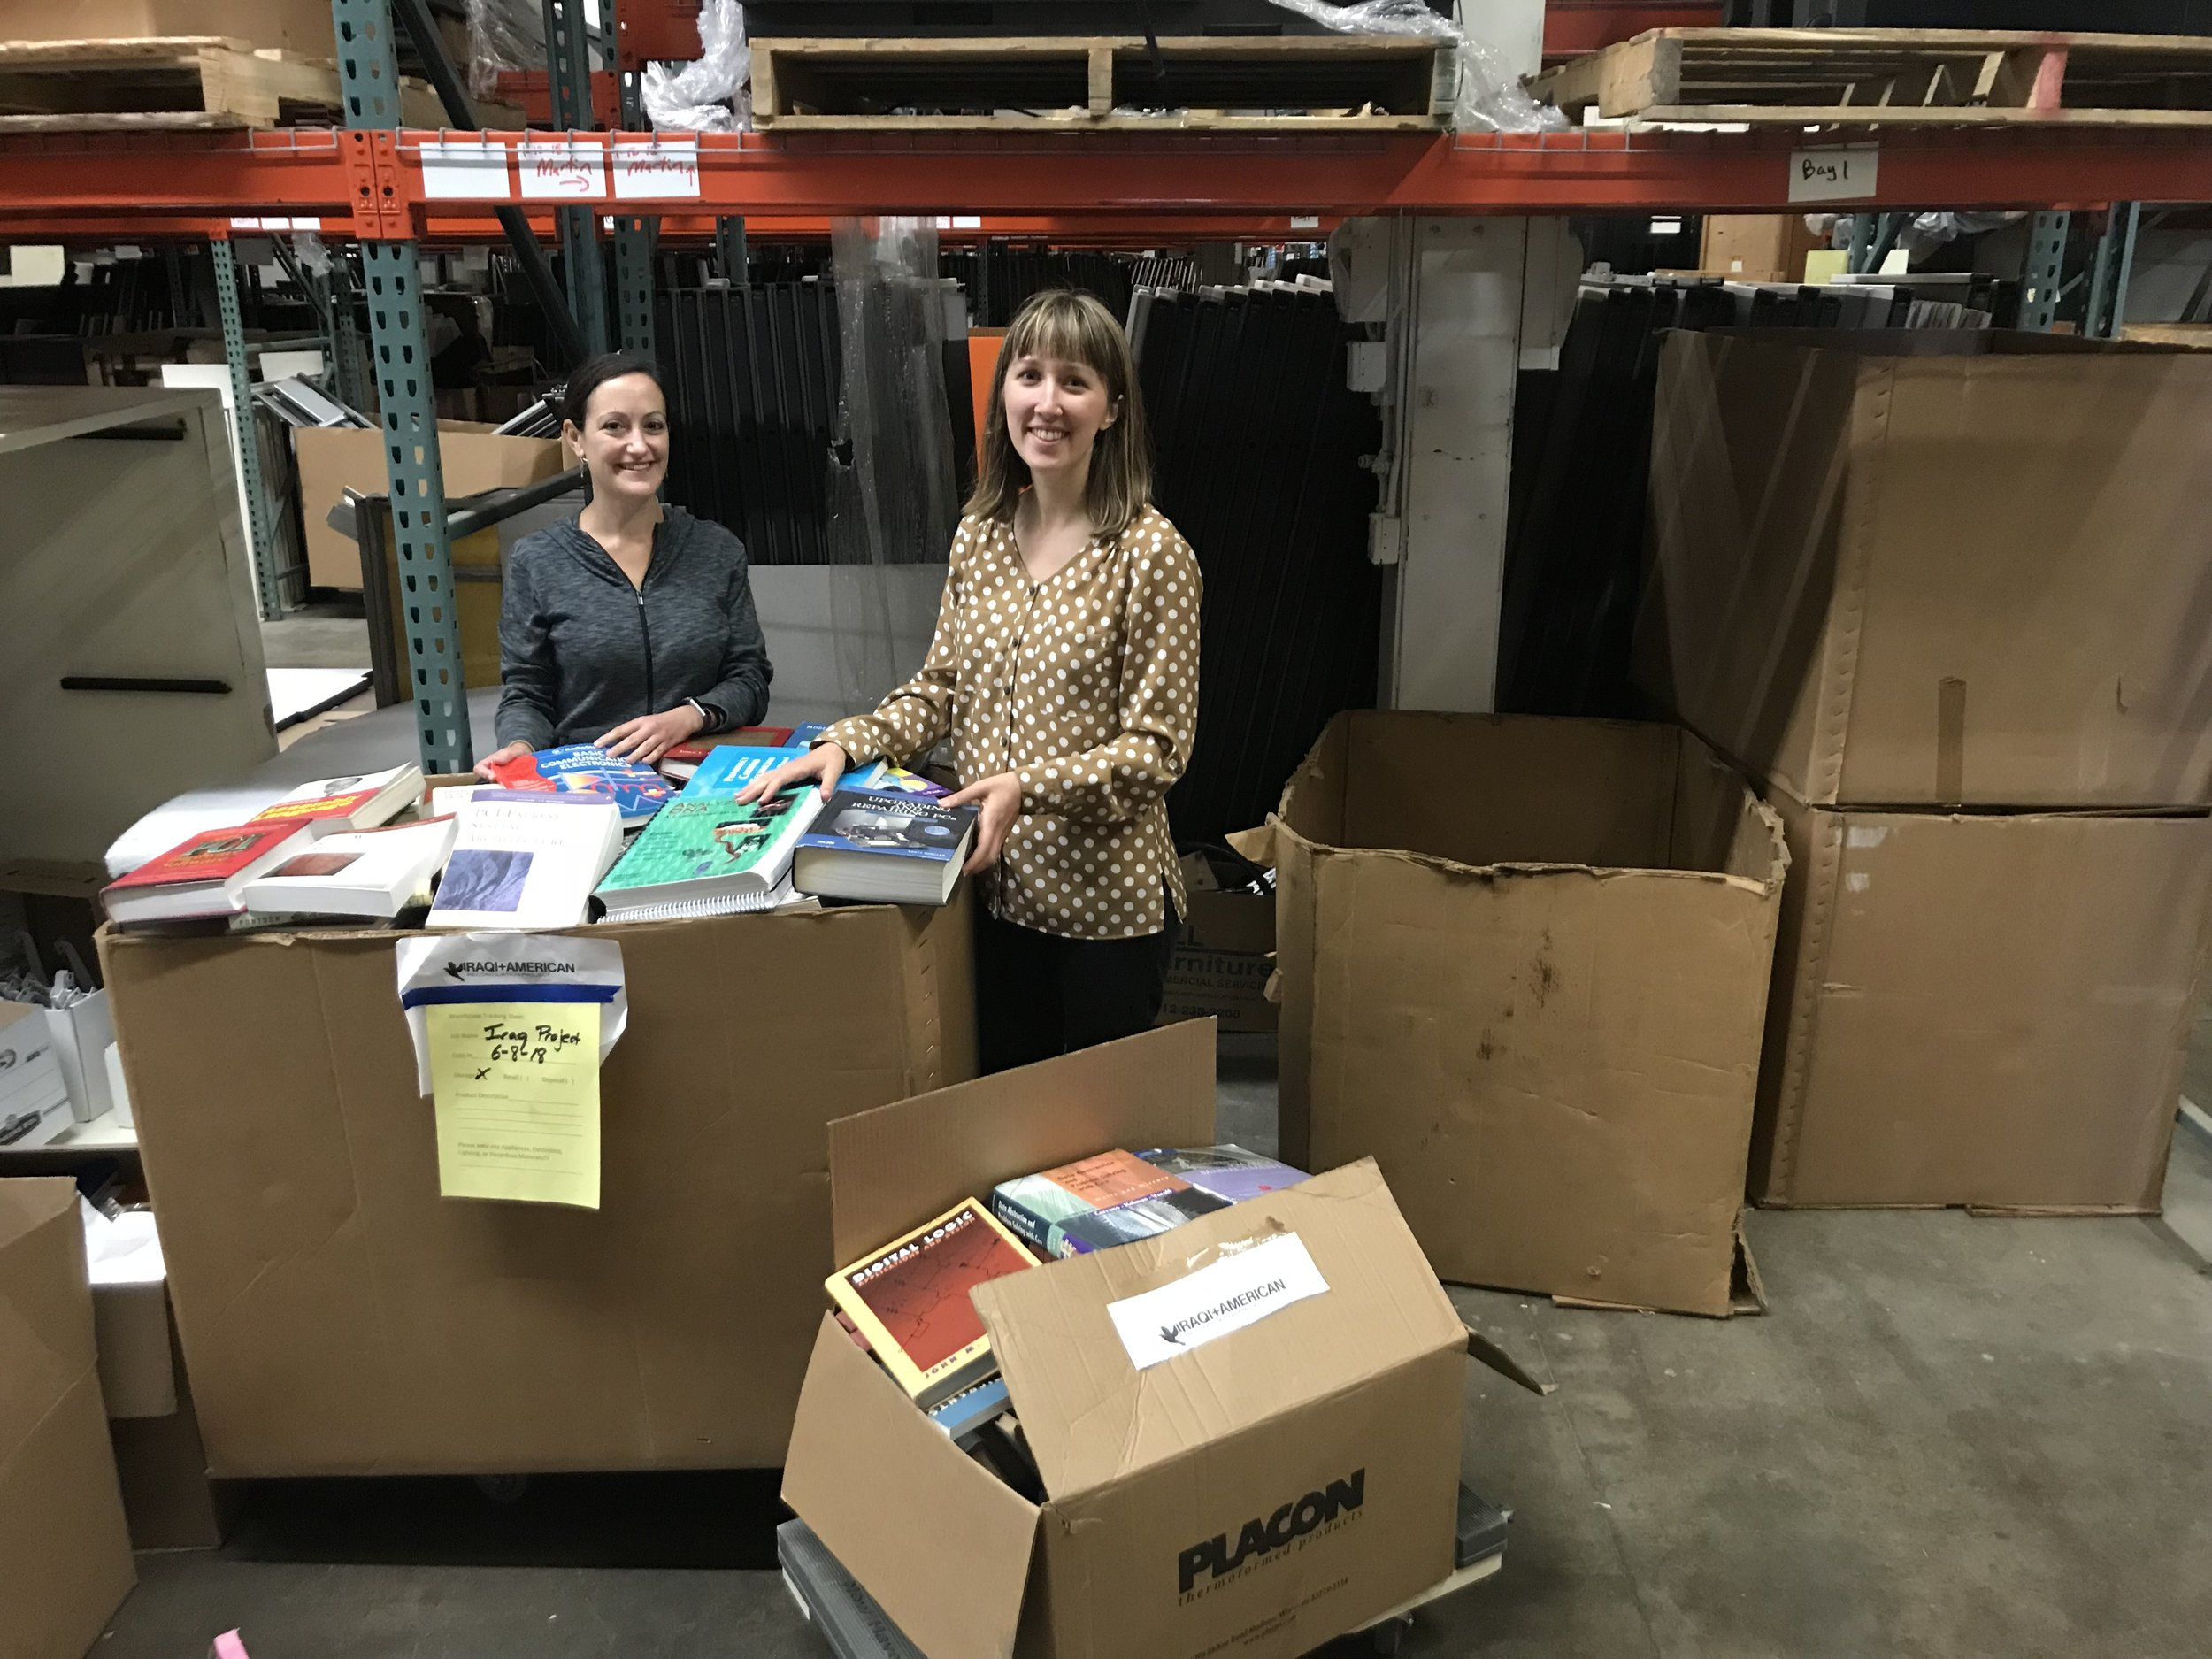 Jessy Belt and Erin Hart Organizing Books for Mosul